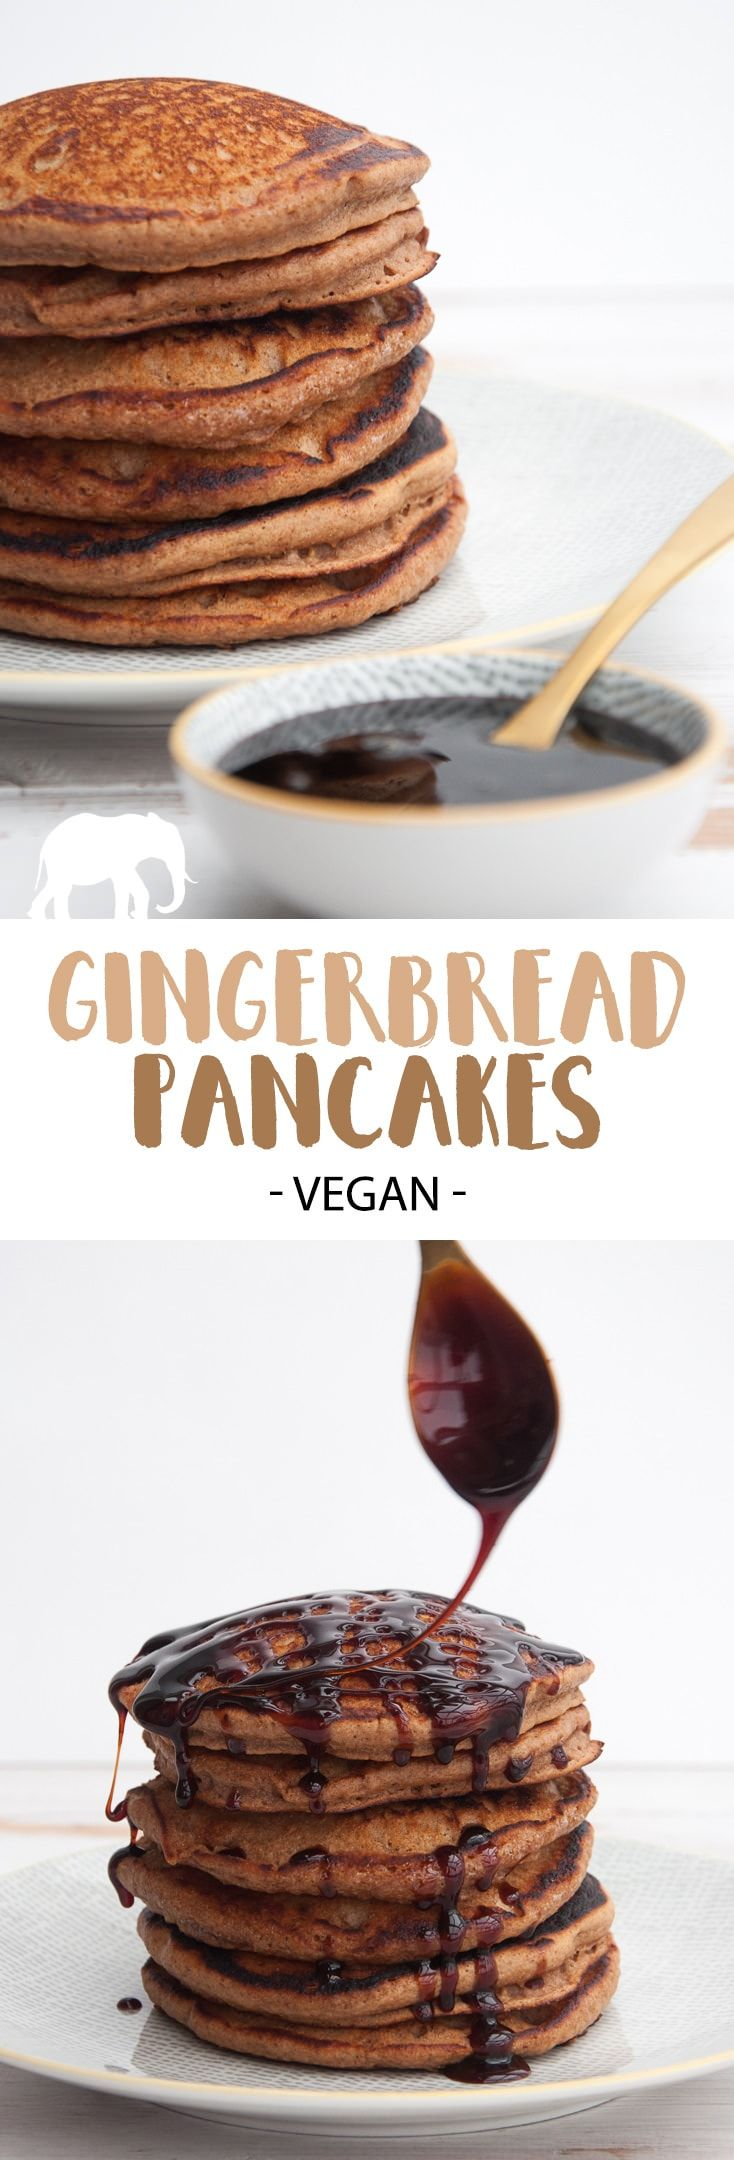 Vegan Gingerbread Pancakes with date syrup | ElephantasticVegan.com #vegan #gingerbread #pancakes #christmas via @elephantasticv